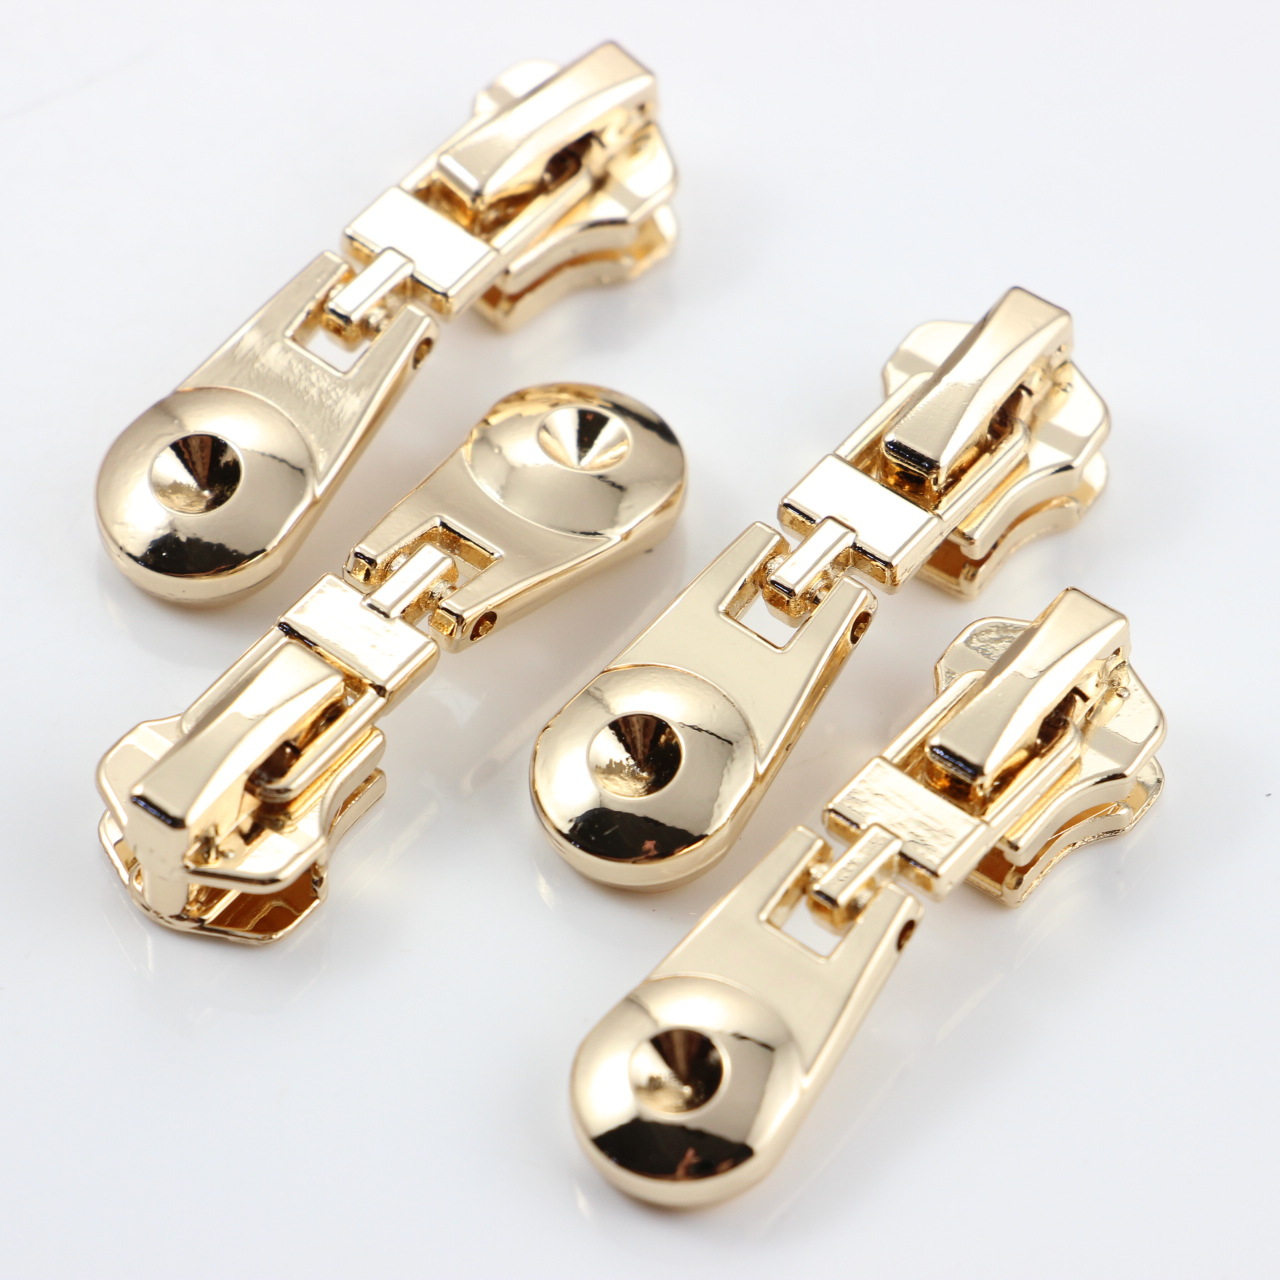 Zippers For Sewing Zippers 100 Pcs [factory Direct Sales] 5# Metal Zipper Head Pull The Of A Piece Of Fashion Bottom Of Circular(China (Mainland))